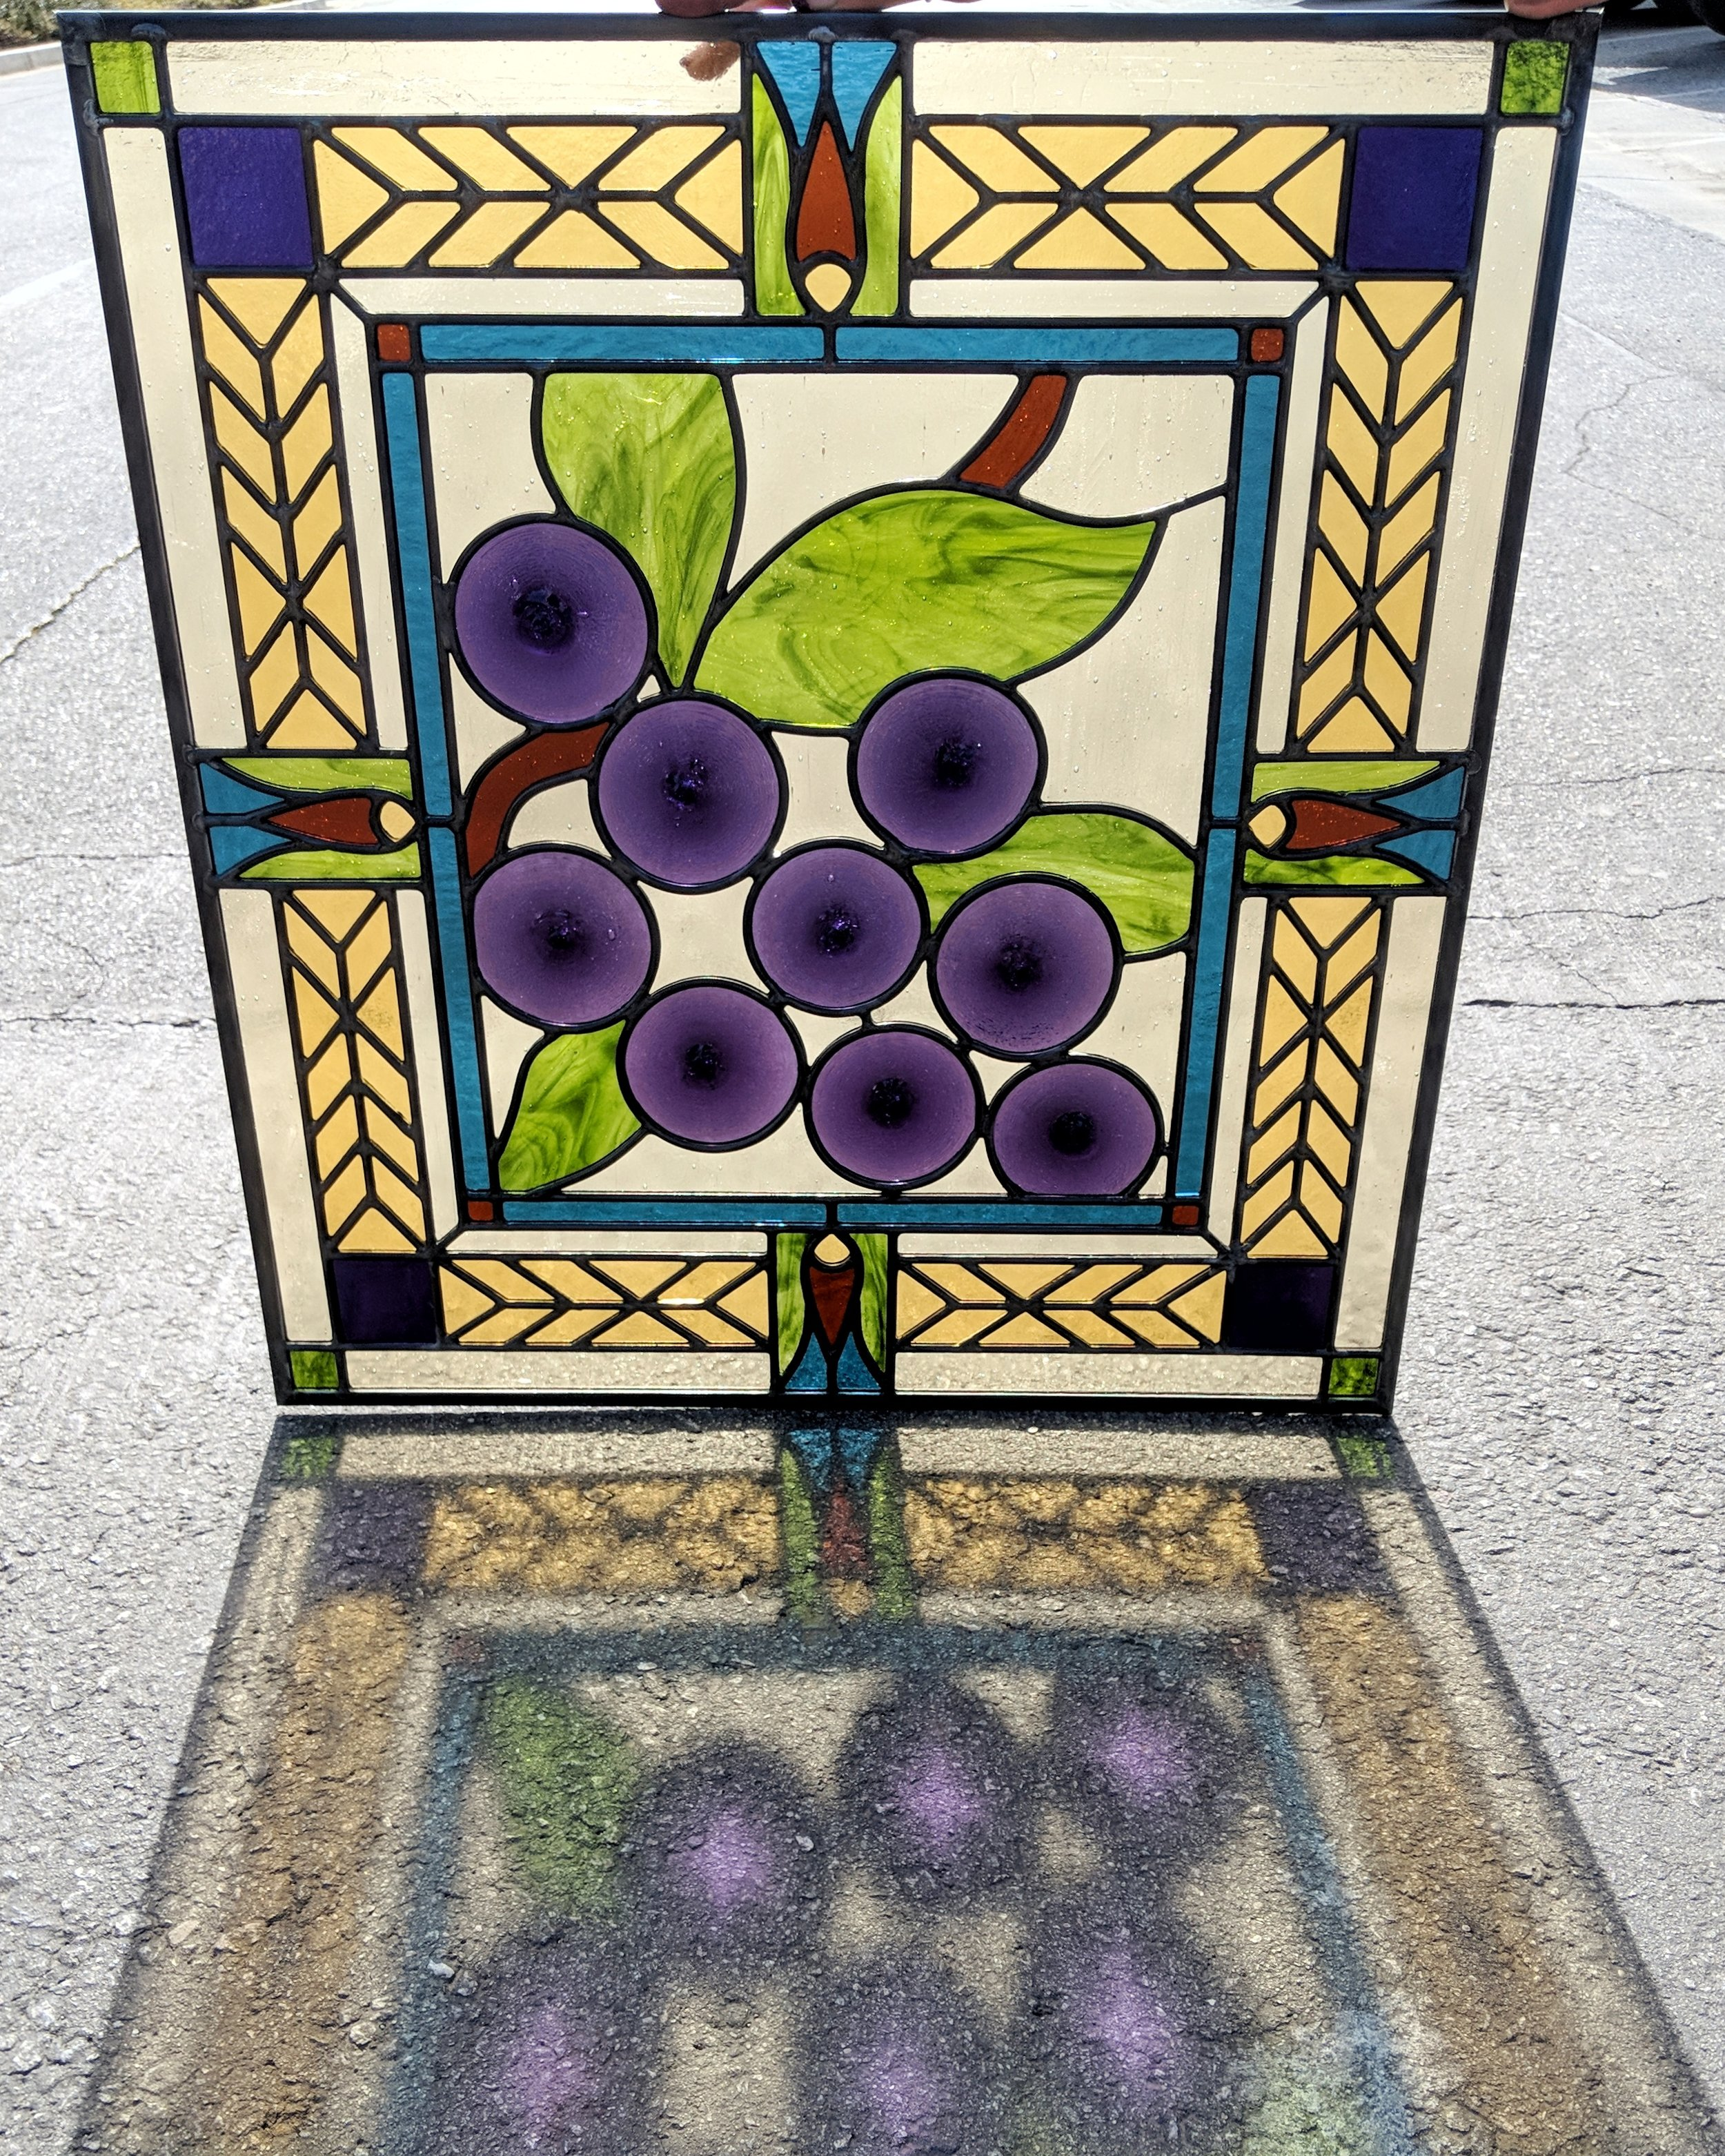 stained glass leaded glass design legacy glass studios menlo park bay area california craftsman home wine room door grapes vineyard rondels kokomo tulip floral cathedral glass.jpeg